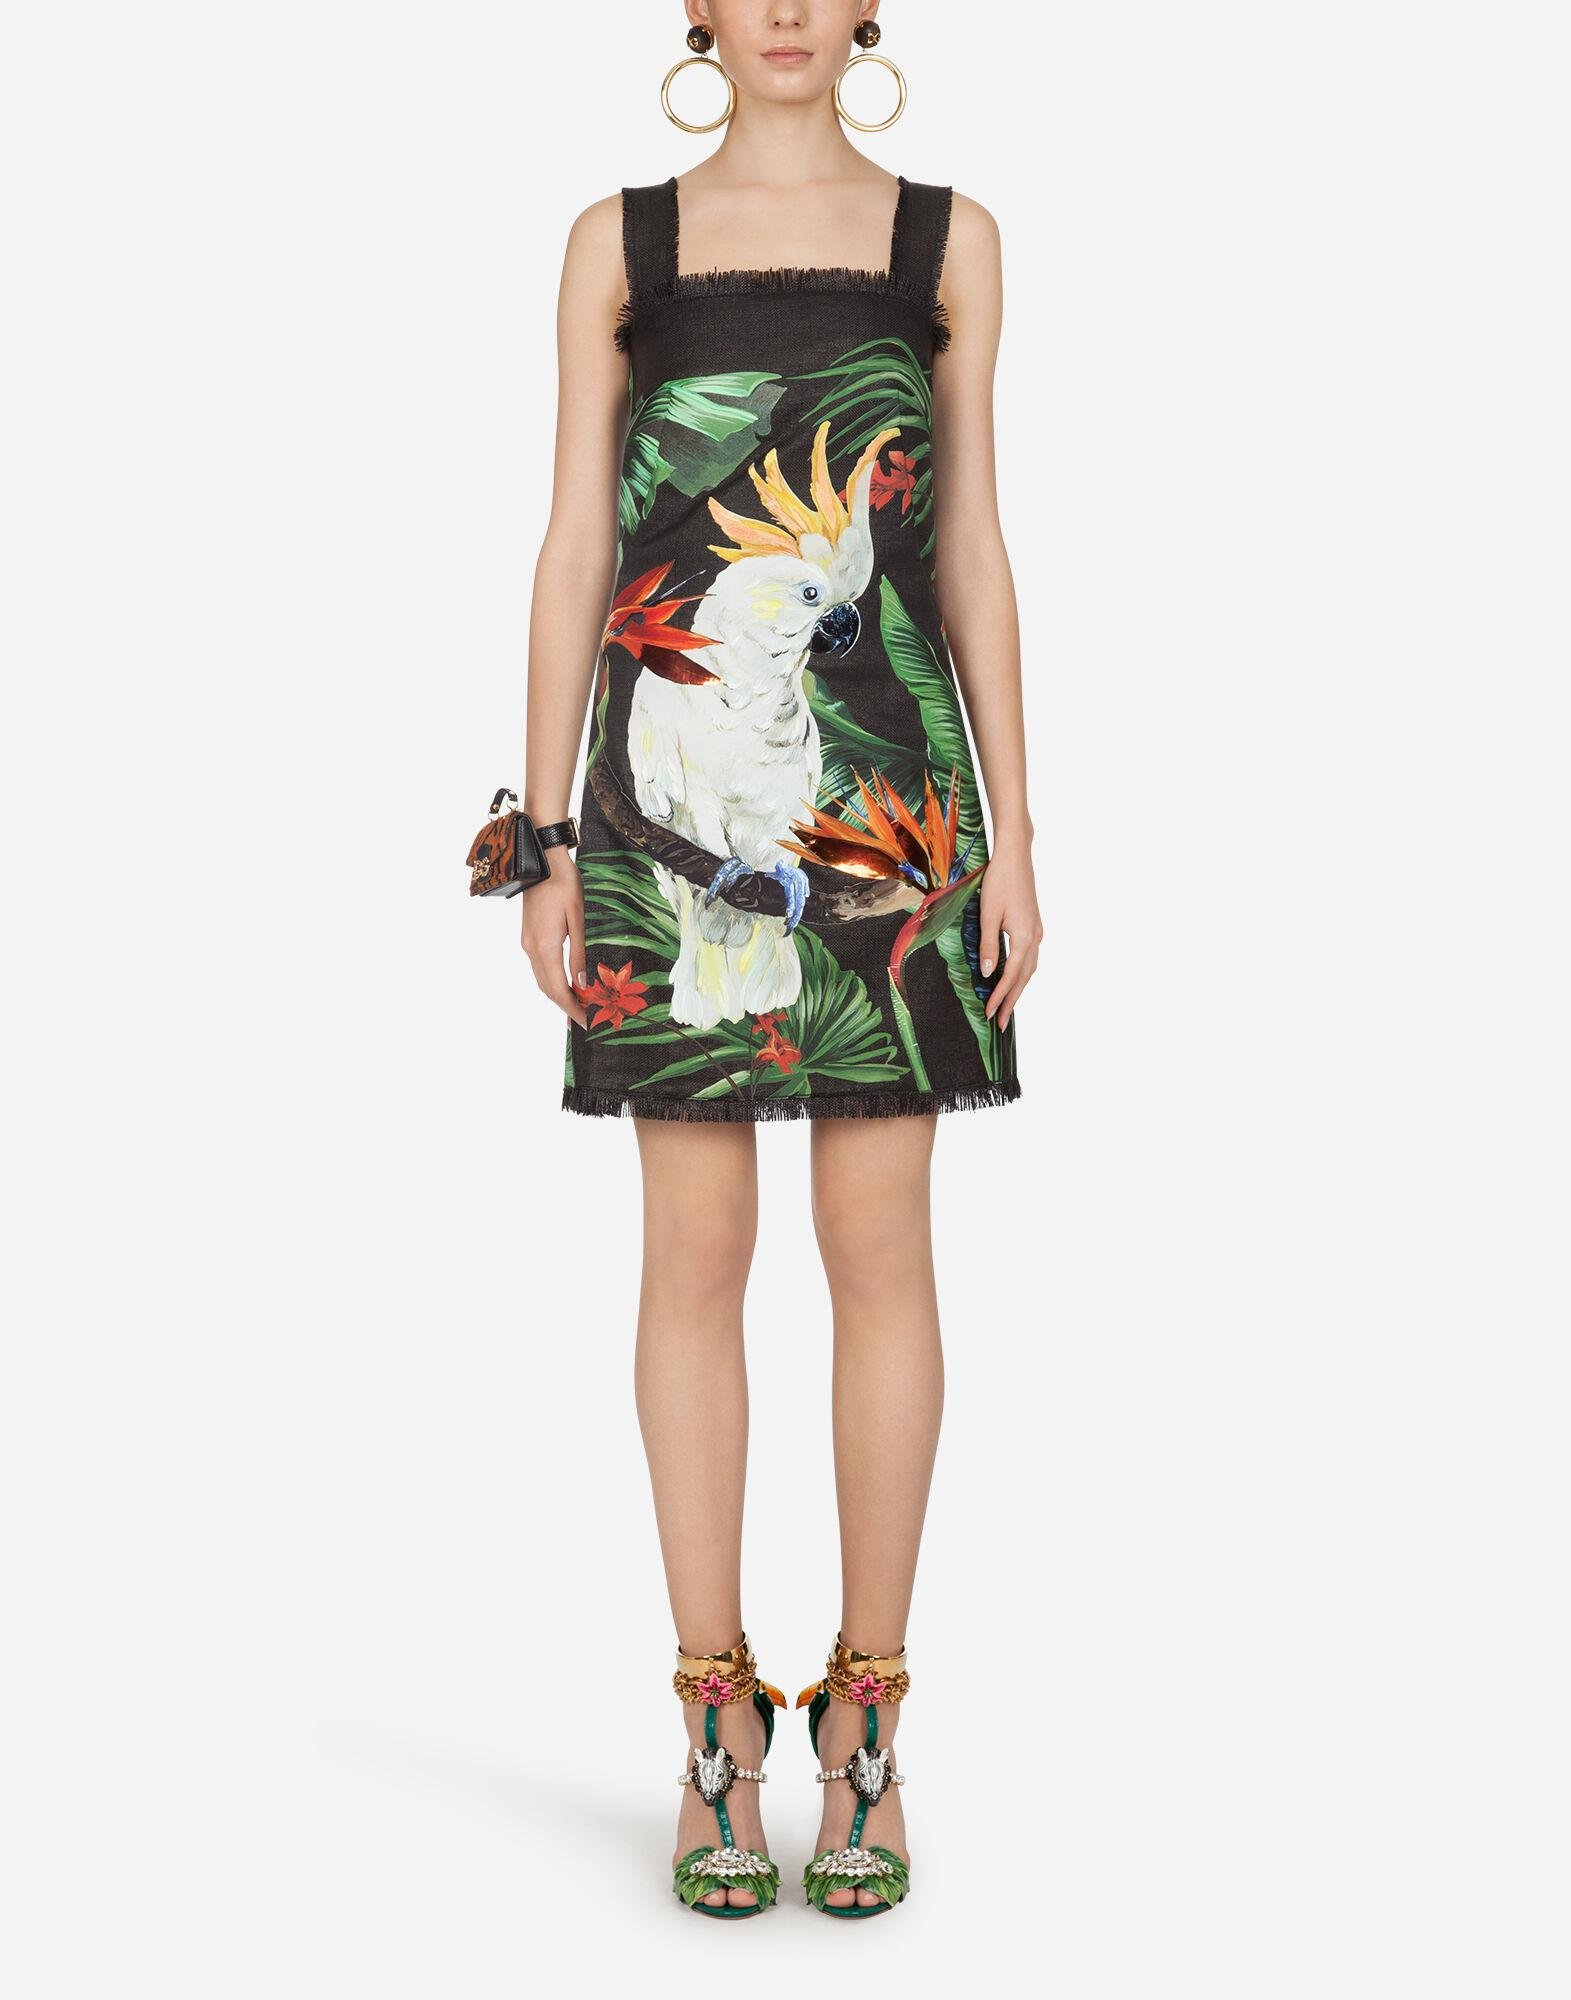 Short dress in raffia jacquard with parrot